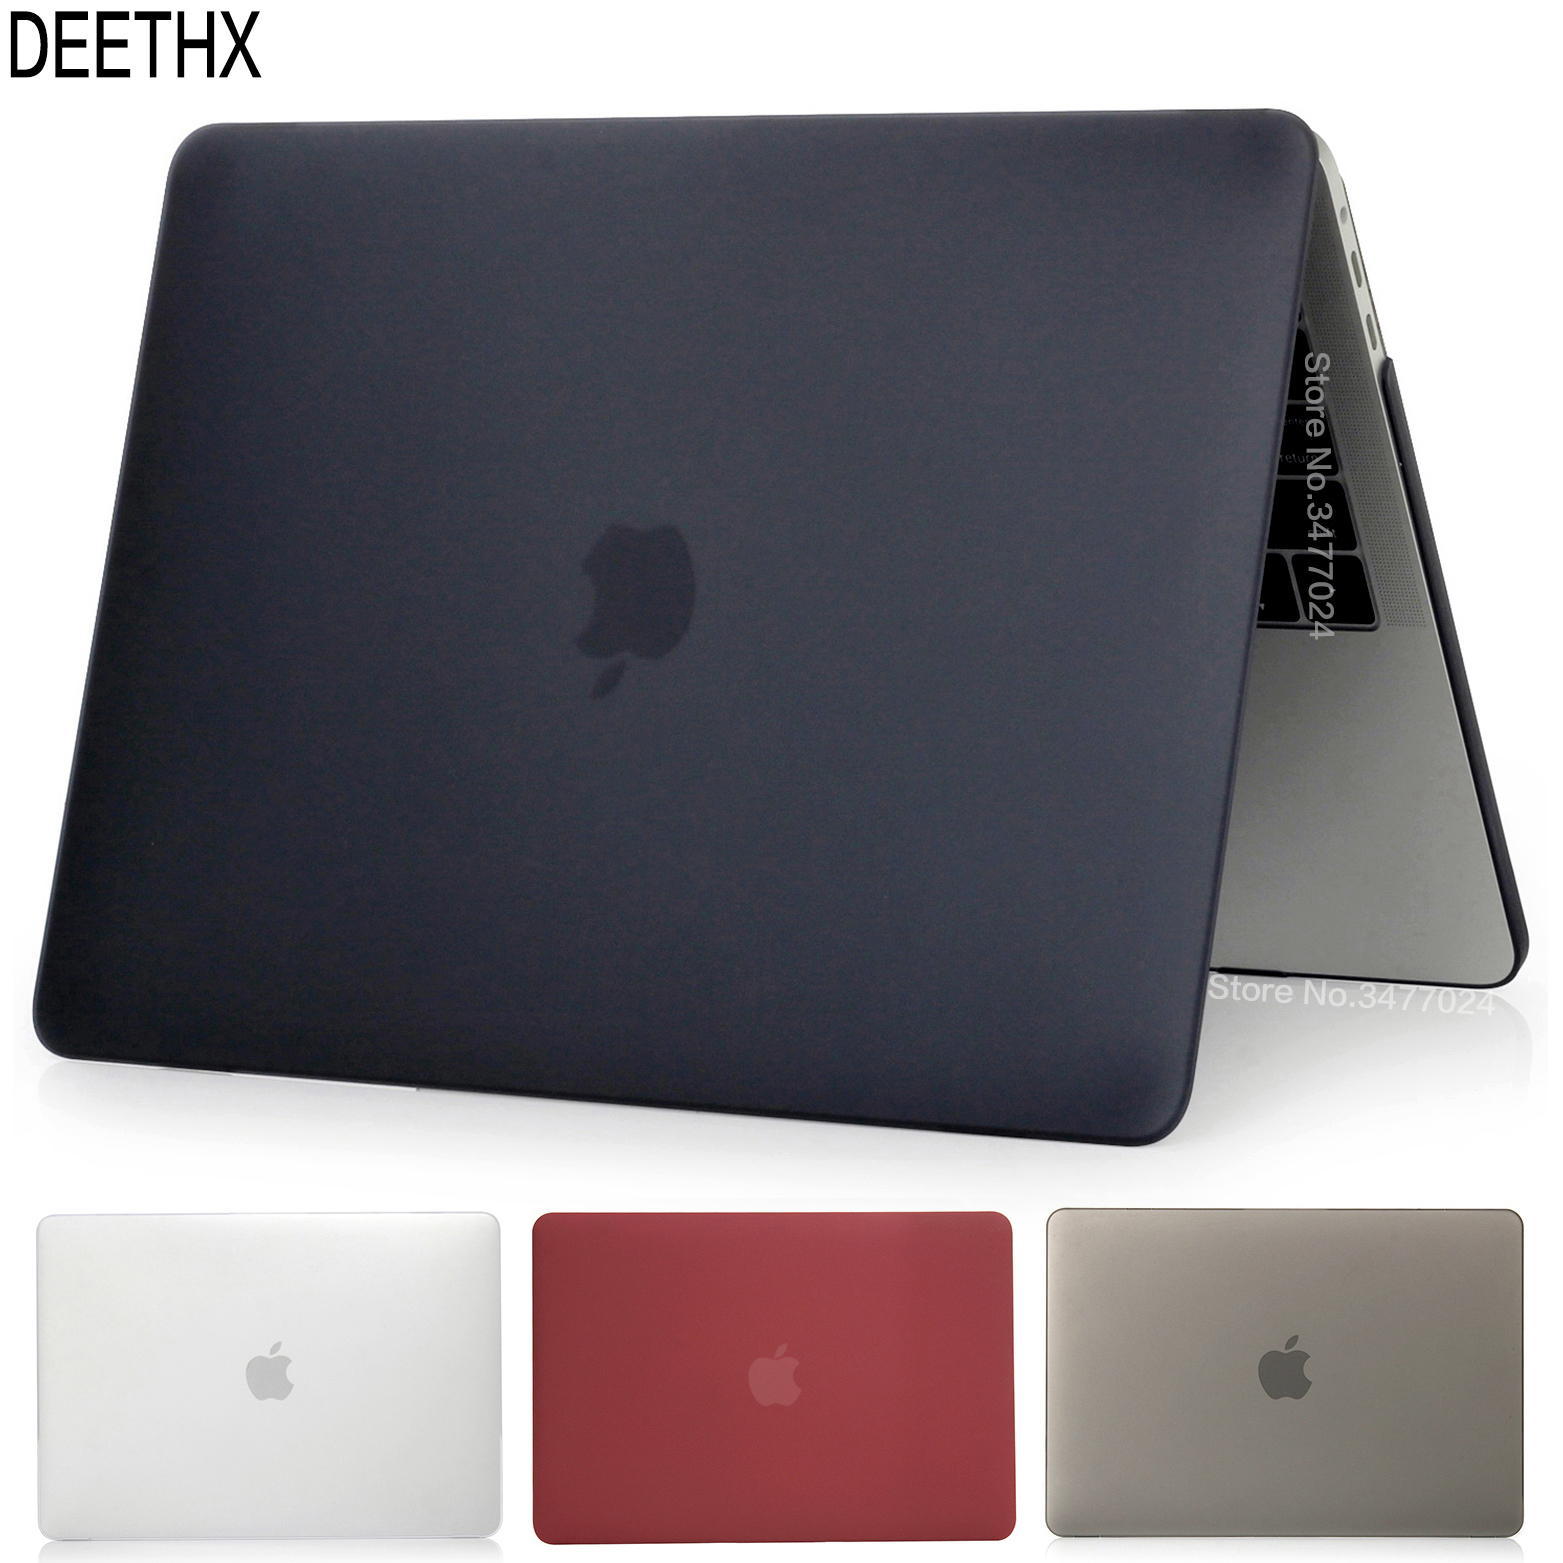 Macbook Air Case | Matte/crystal,Laptop Case For Macbook Pro Retina Air 11 12 13 15, For Mac Air 13 A1466 A1932,2019 New Pro 13.3 15 16 Shell Cover